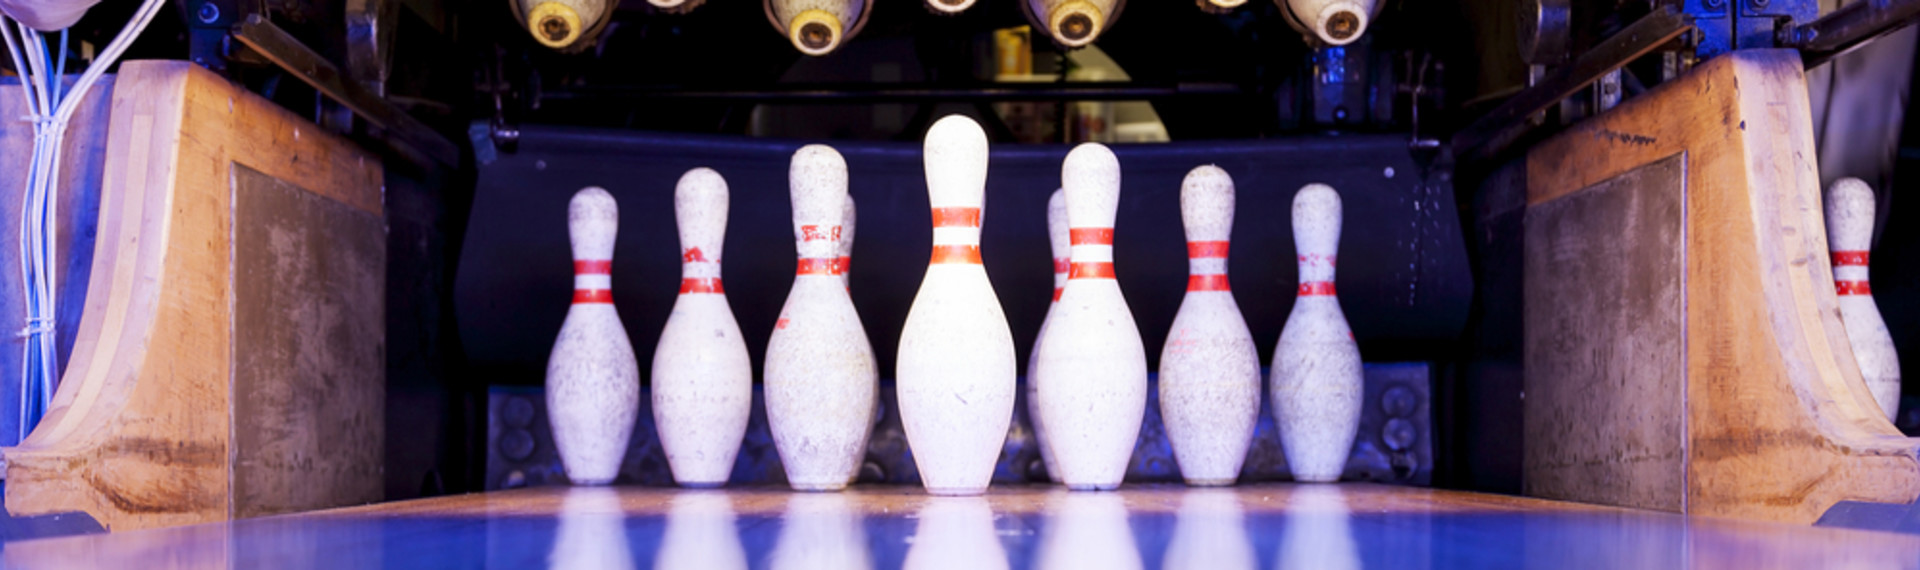 Cologne Bowling image